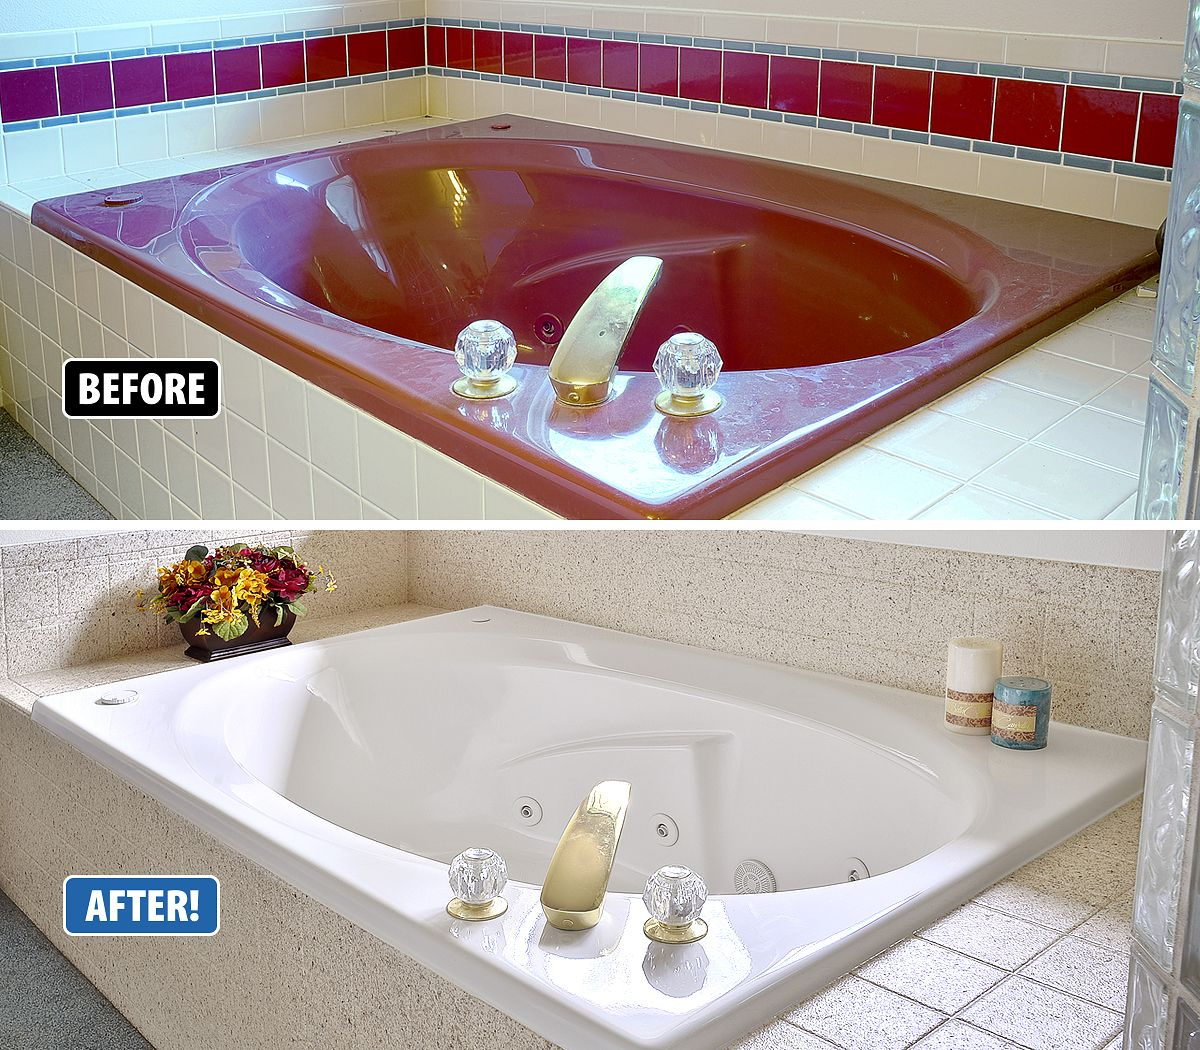 Miracle Method Transformed This Outdated Jacuzzi Tub To Look Like New And Gave It A Current Modern Look Without Tearin Tub Remodel Tub Refinishing Jacuzzi Tub